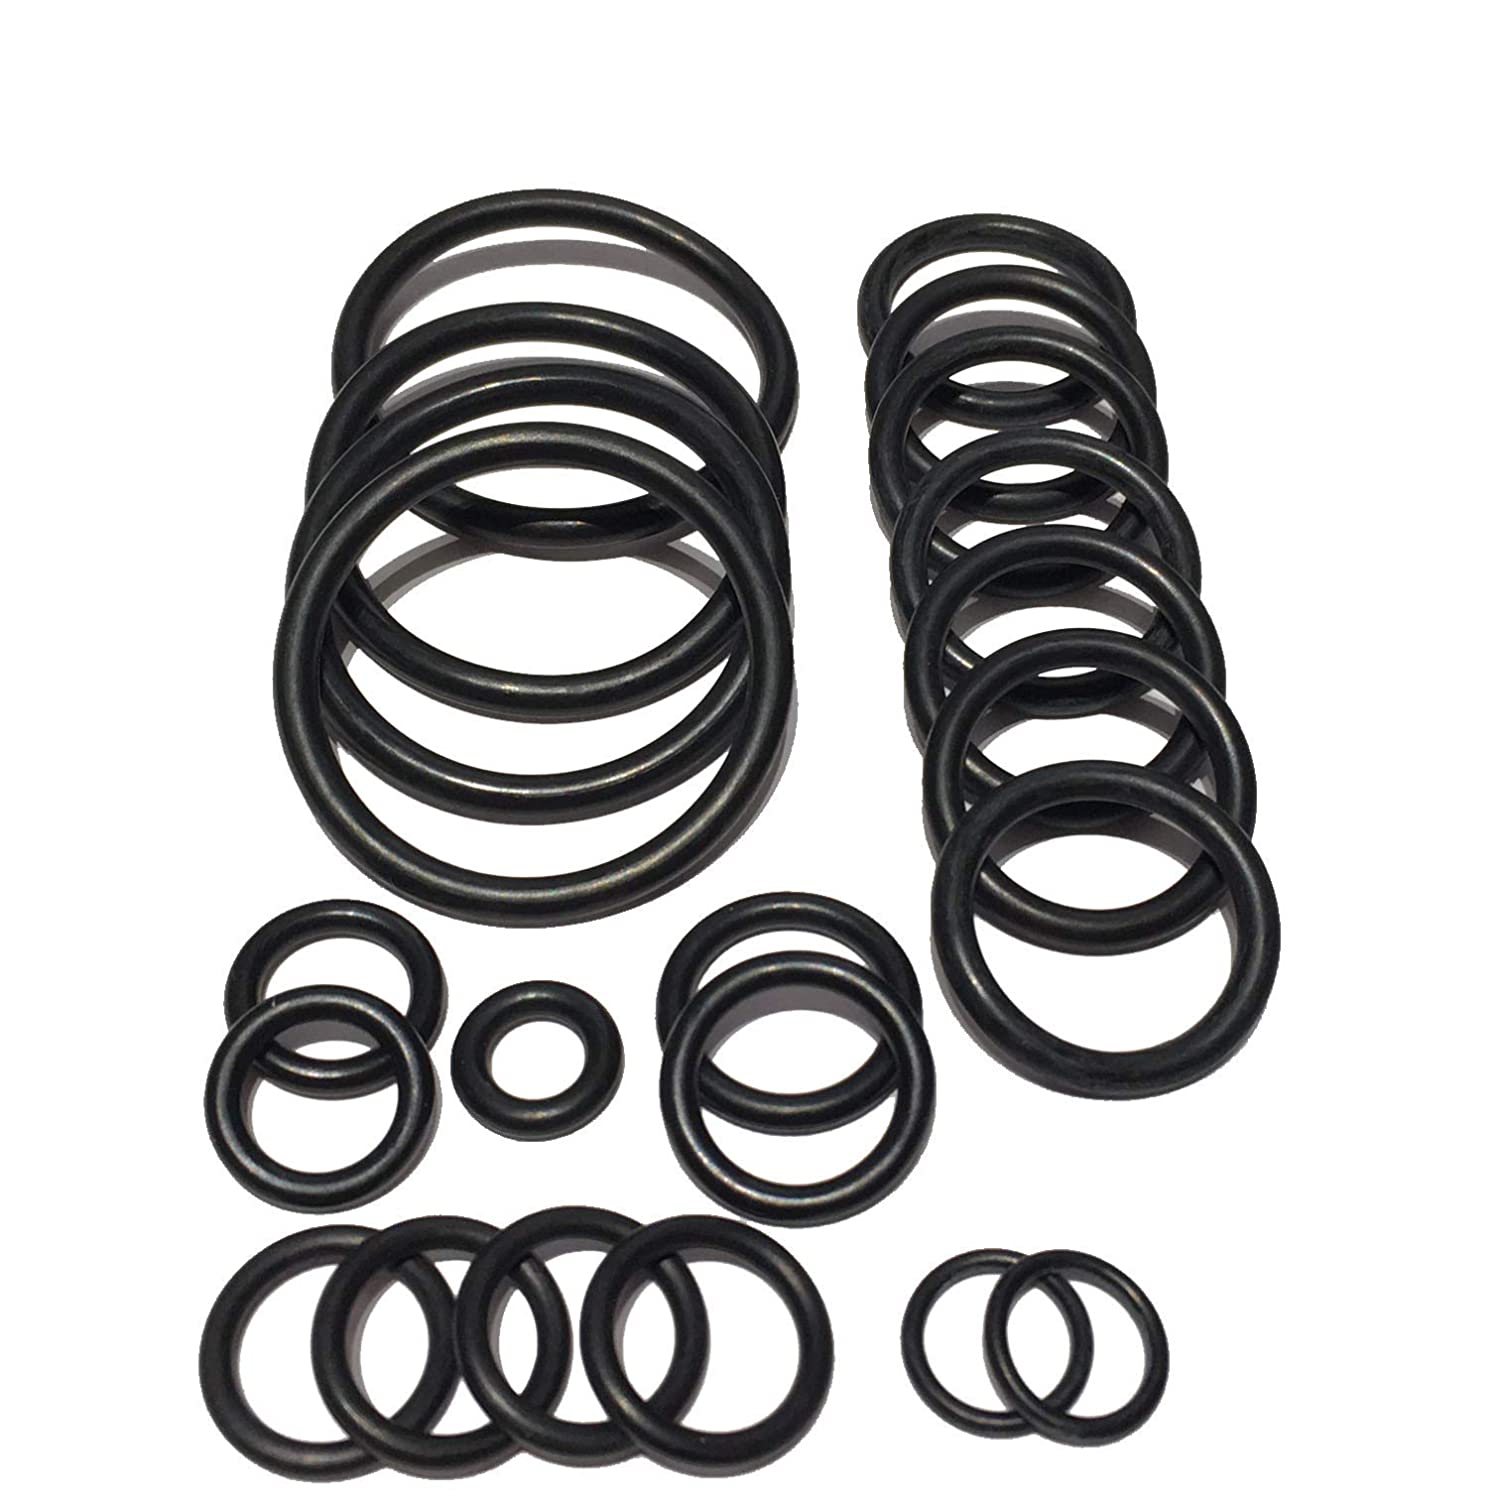 Cooling system radiator hose O ring set For BMW E60N N54 Engine